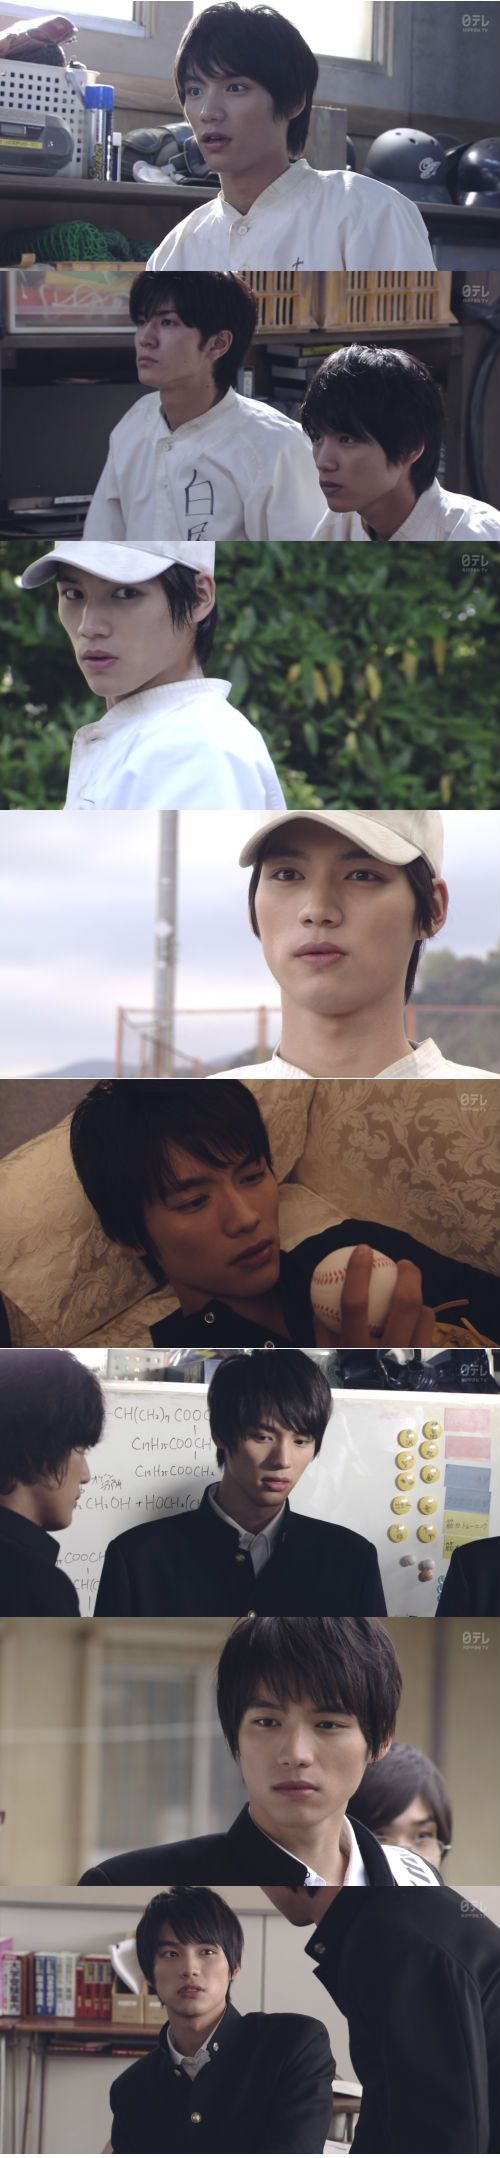 "Sota Fukushi, J drama ""yowakutemo katemasu"", 2014. Ep.1-11 [English Sub]muST WATCH"